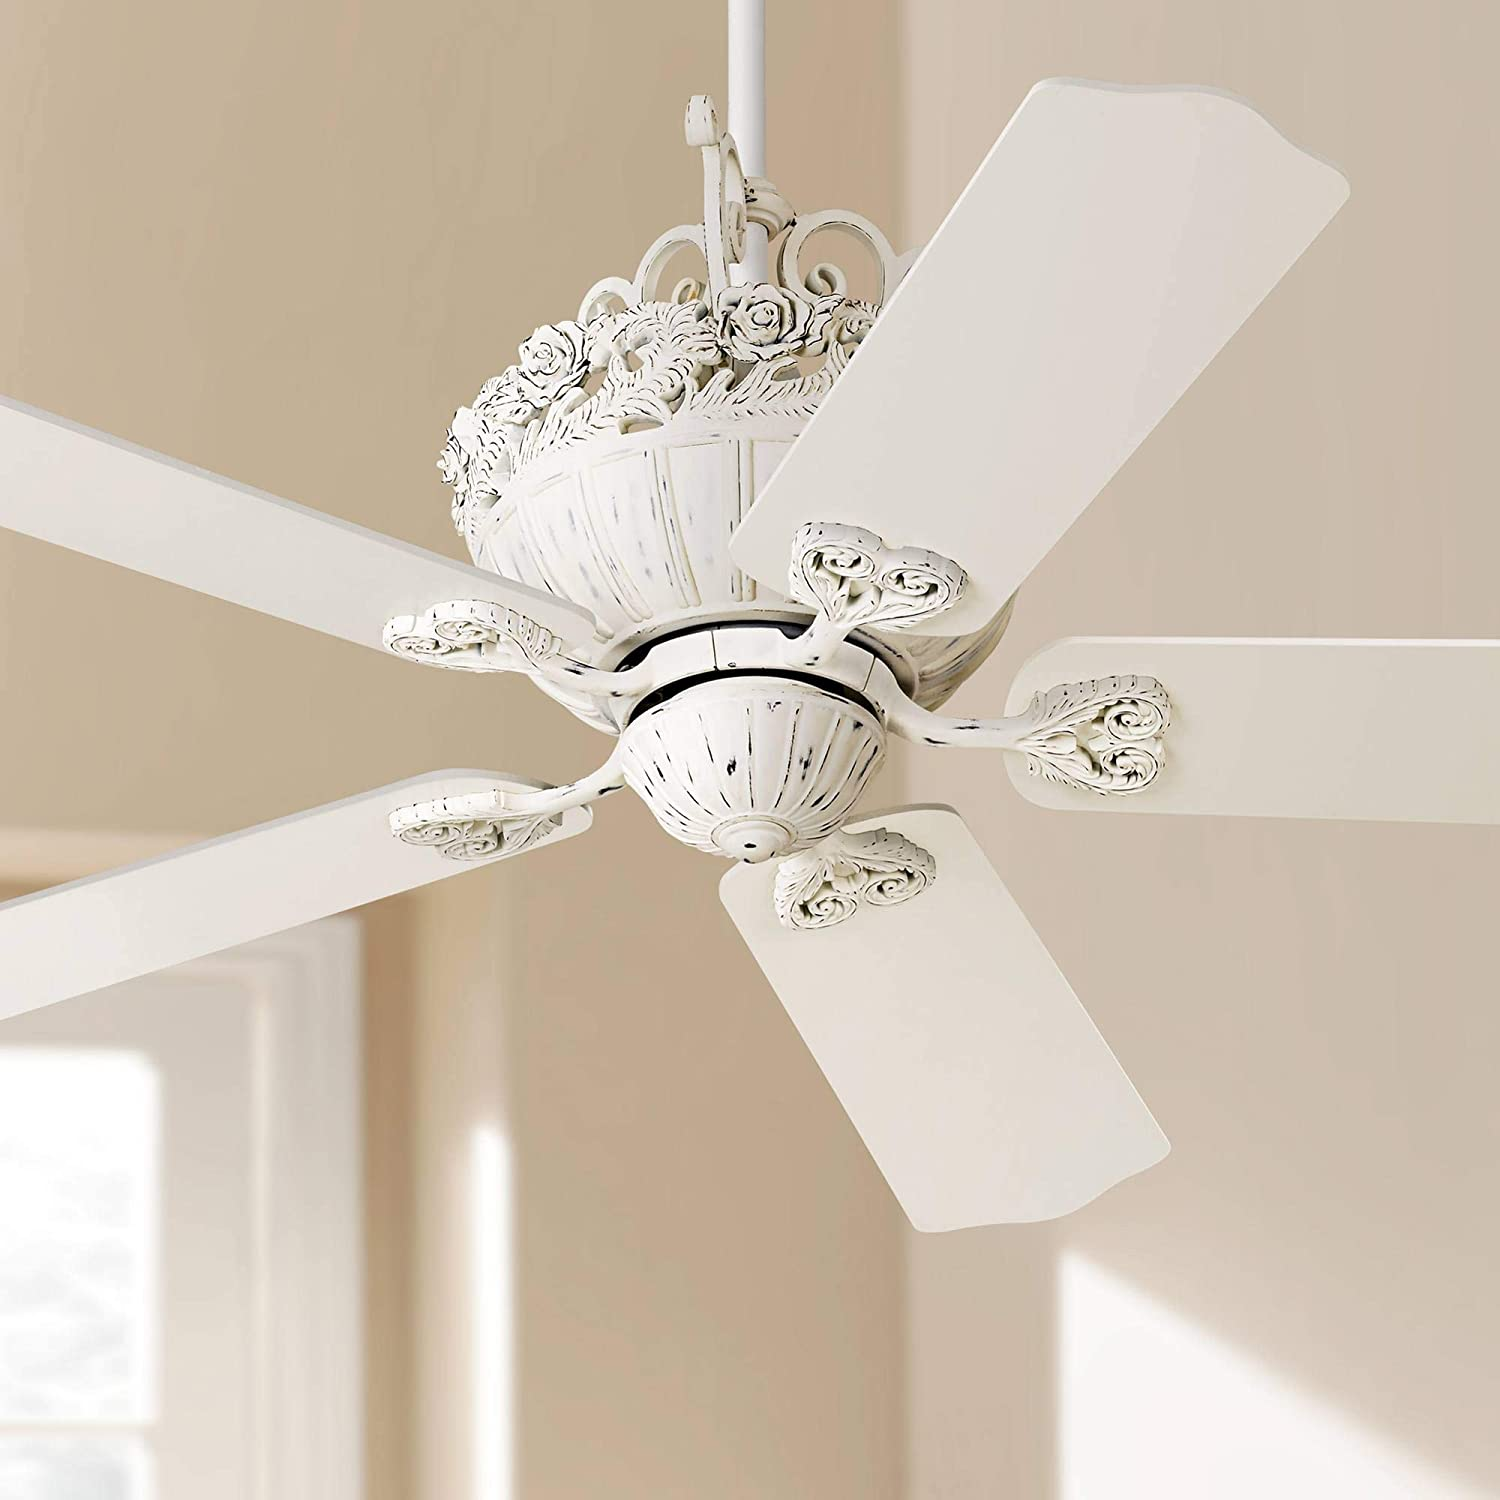 52 Casa Shabby Chic Ceiling Fan Antique Floral Scroll Rubbed White for Living Room Kitchen Bedroom Family Dining – Casa Vieja